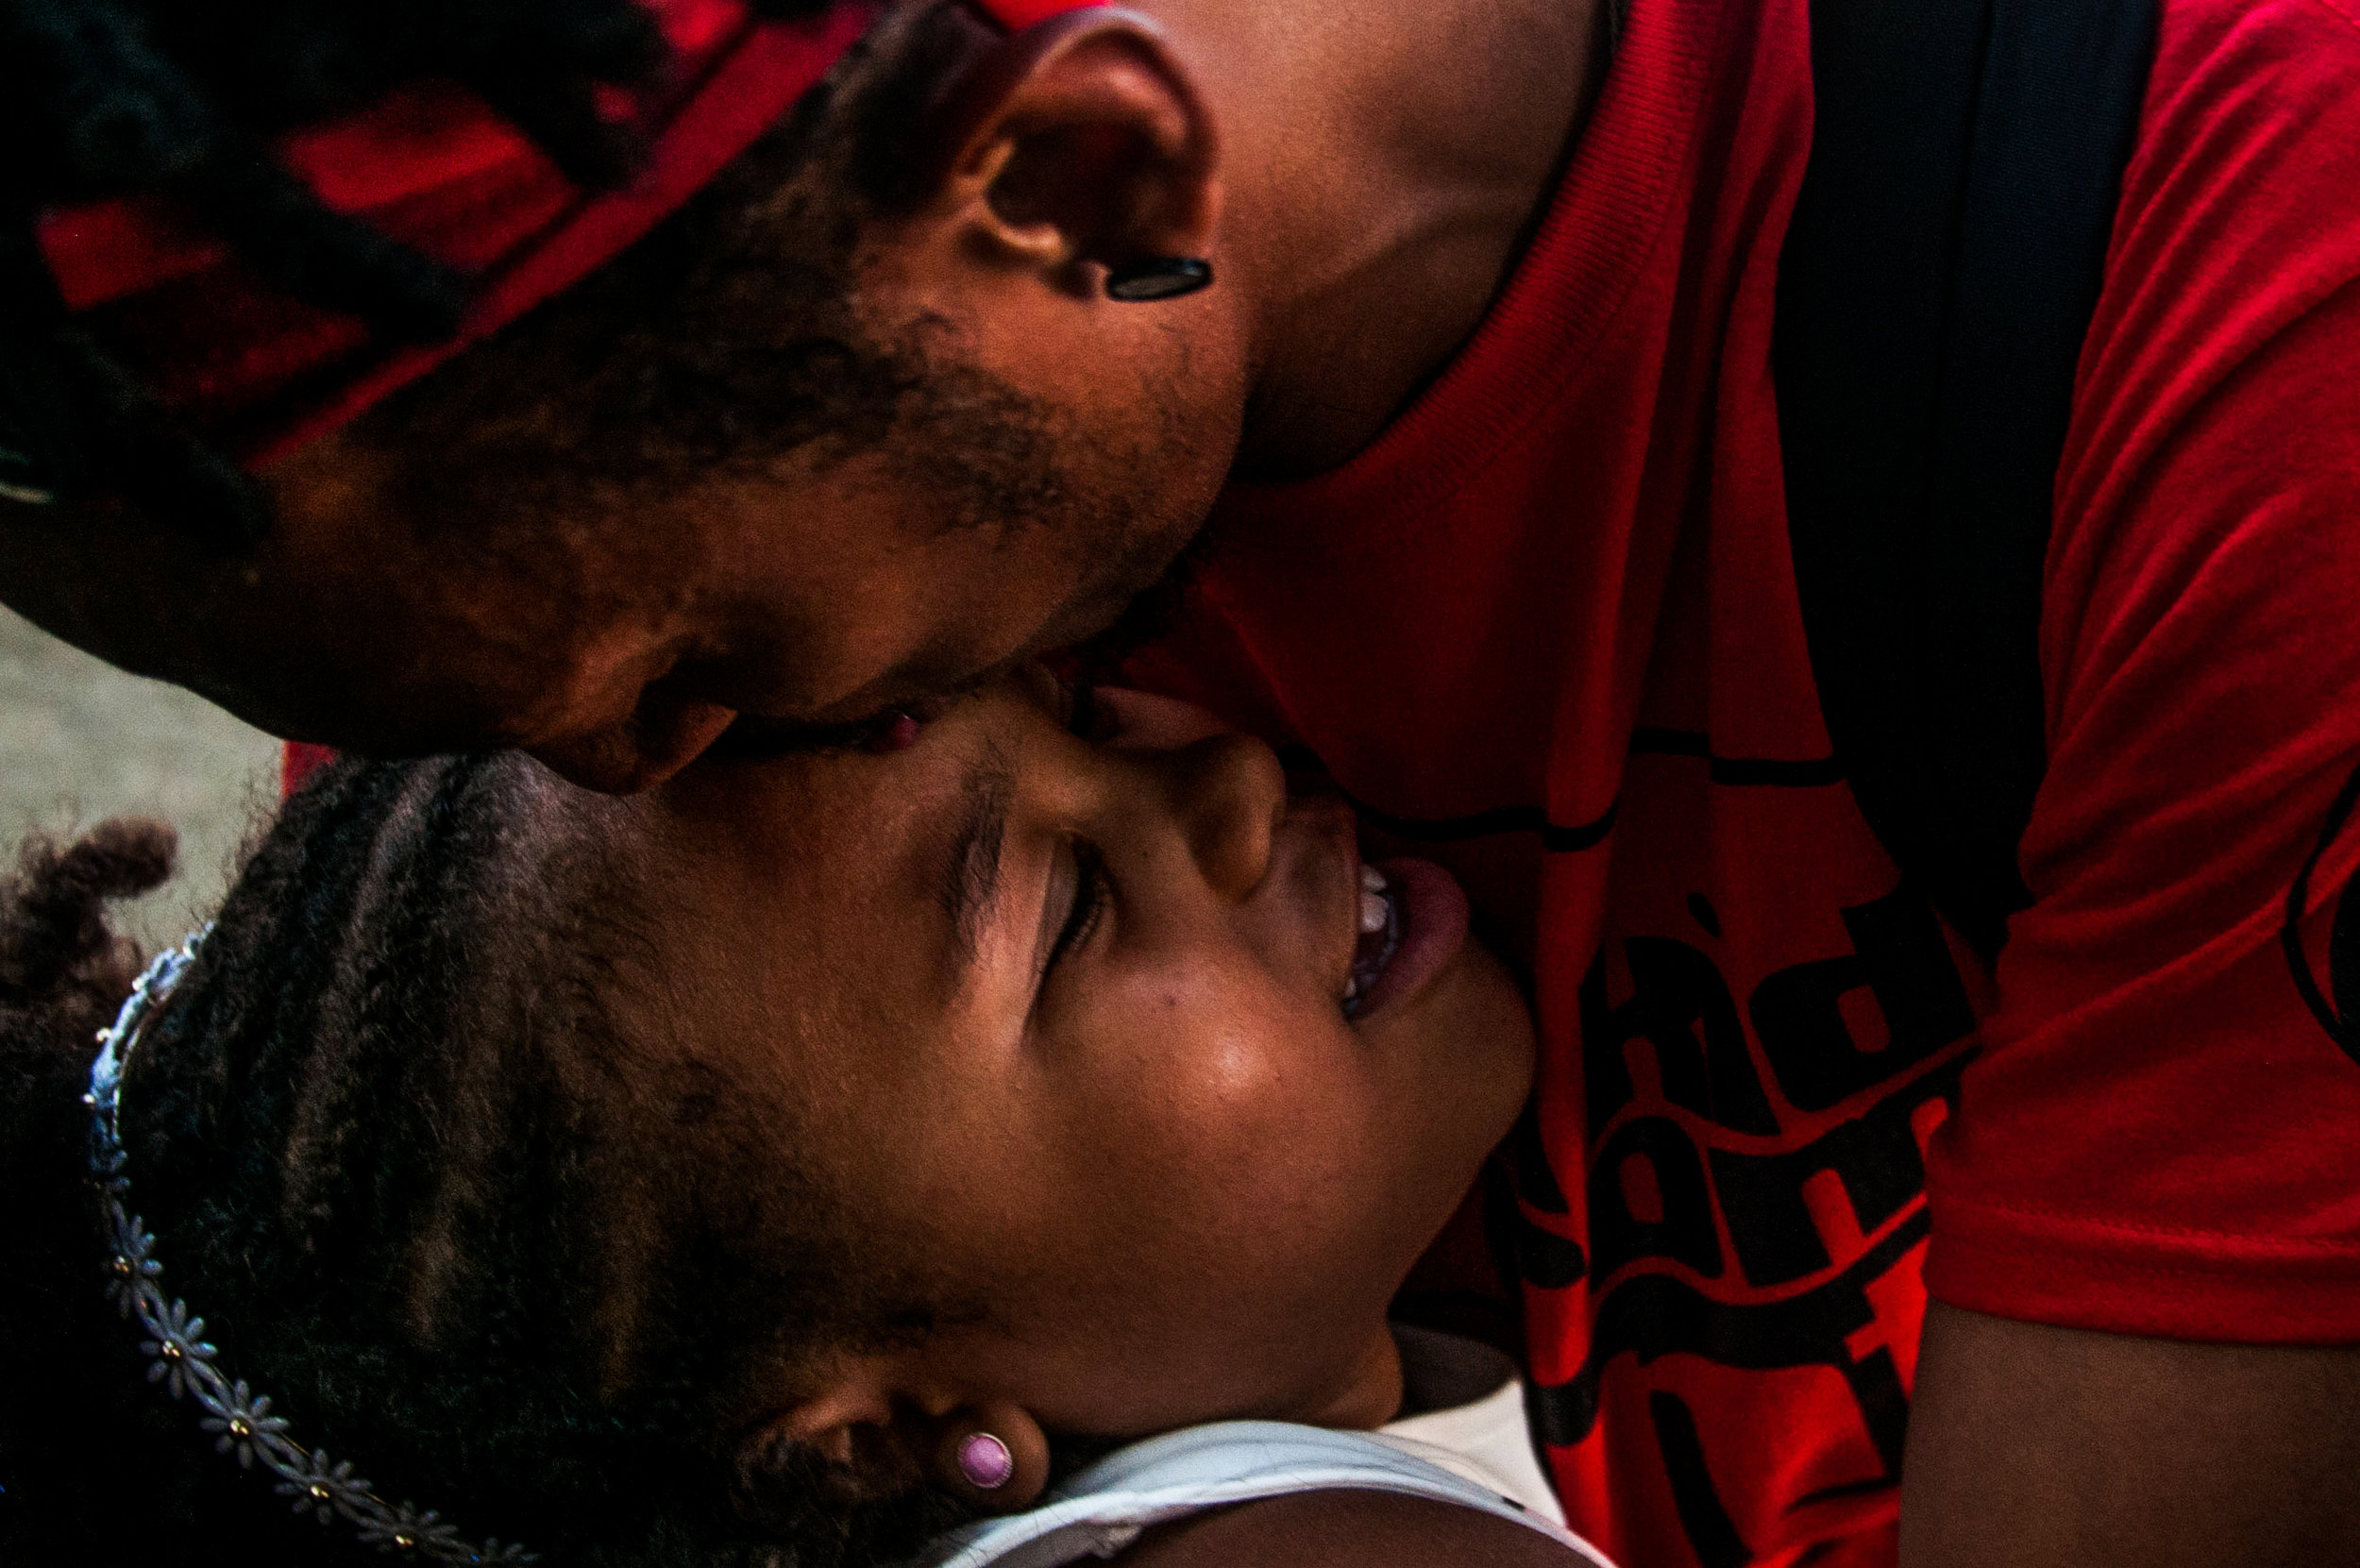 Gerald Barrett, of Flint, give Malaika Bradley, 7, of Flint, a kiss at the annual Flint Jazz Festival on Saturday, Aug. 13, 2016 in Flint.